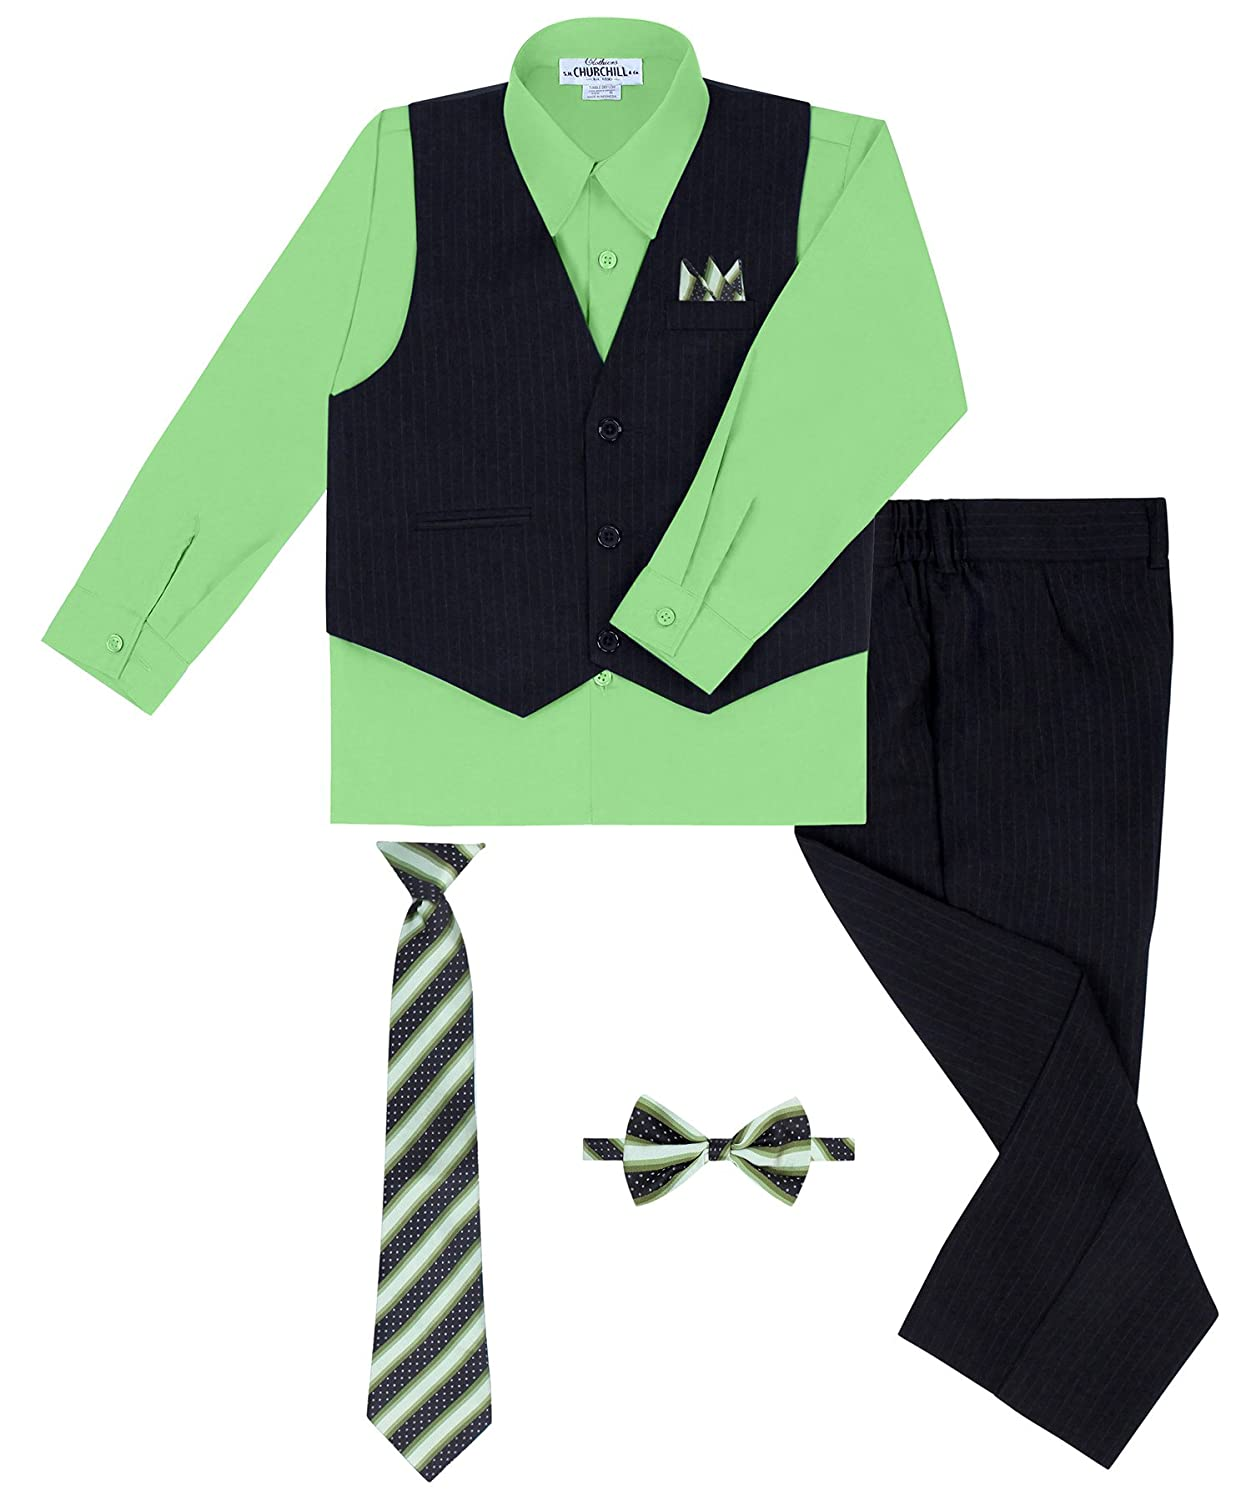 Boy's 5 Piece Vest and Pant Set Includes Shirt Long Tie Bow Tie and Hanky